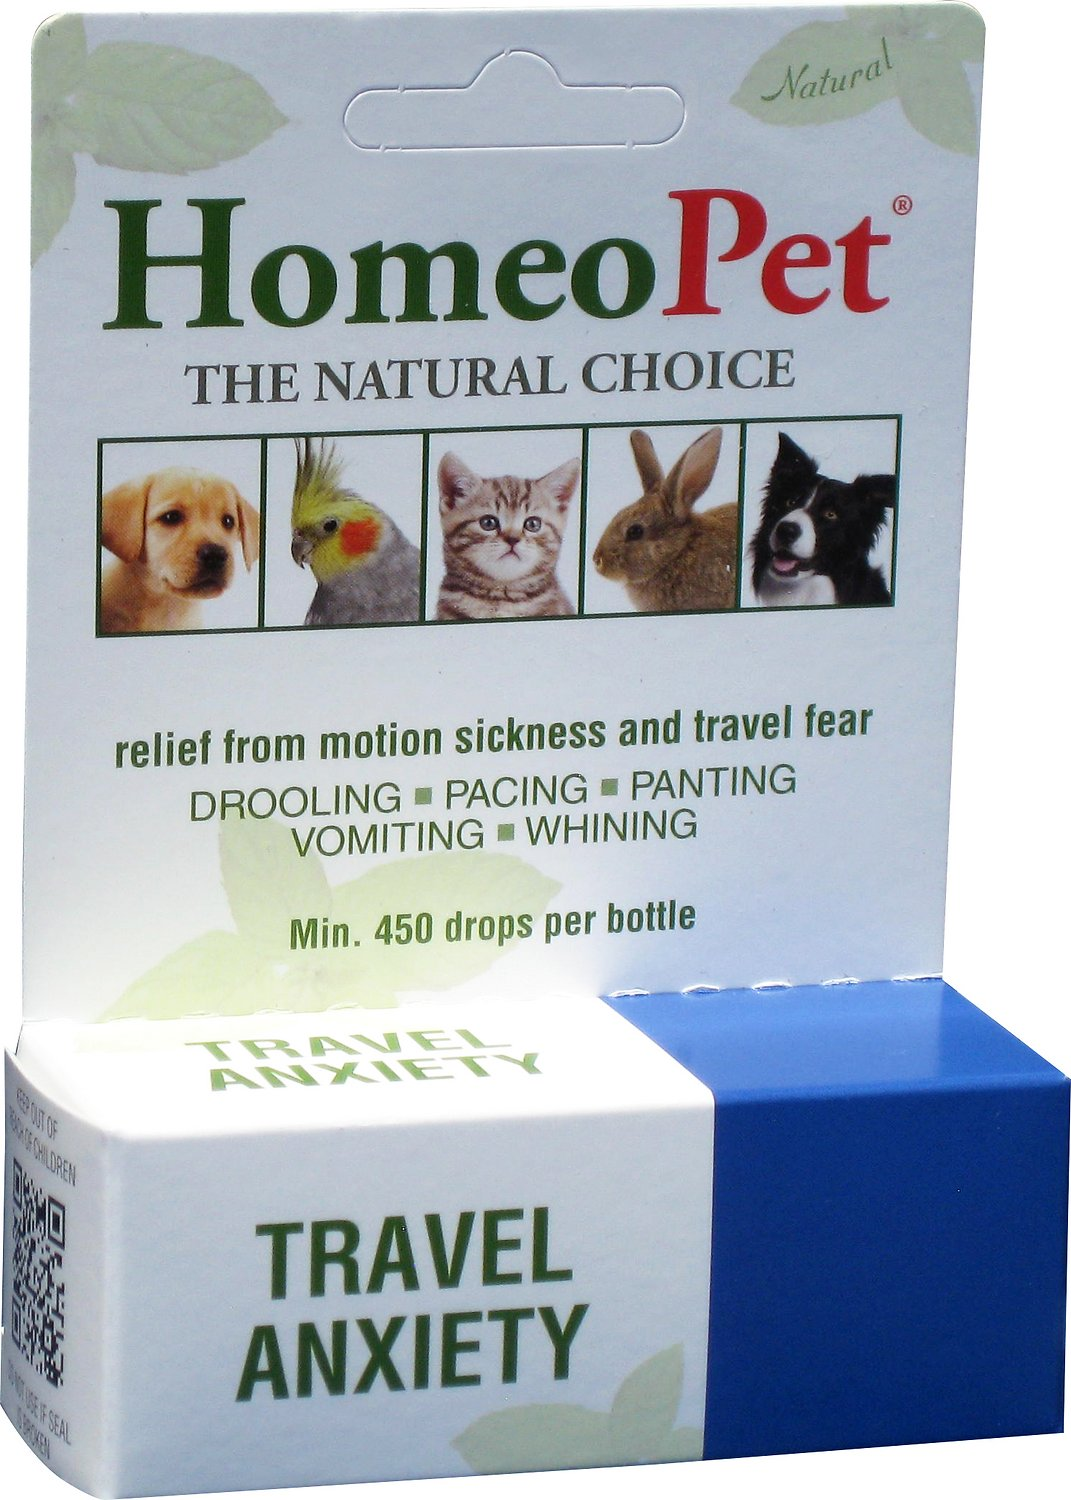 HomeoPet Travel Anxiety Dog, Cat, Bird & Small Animal Supplement, 450 drops